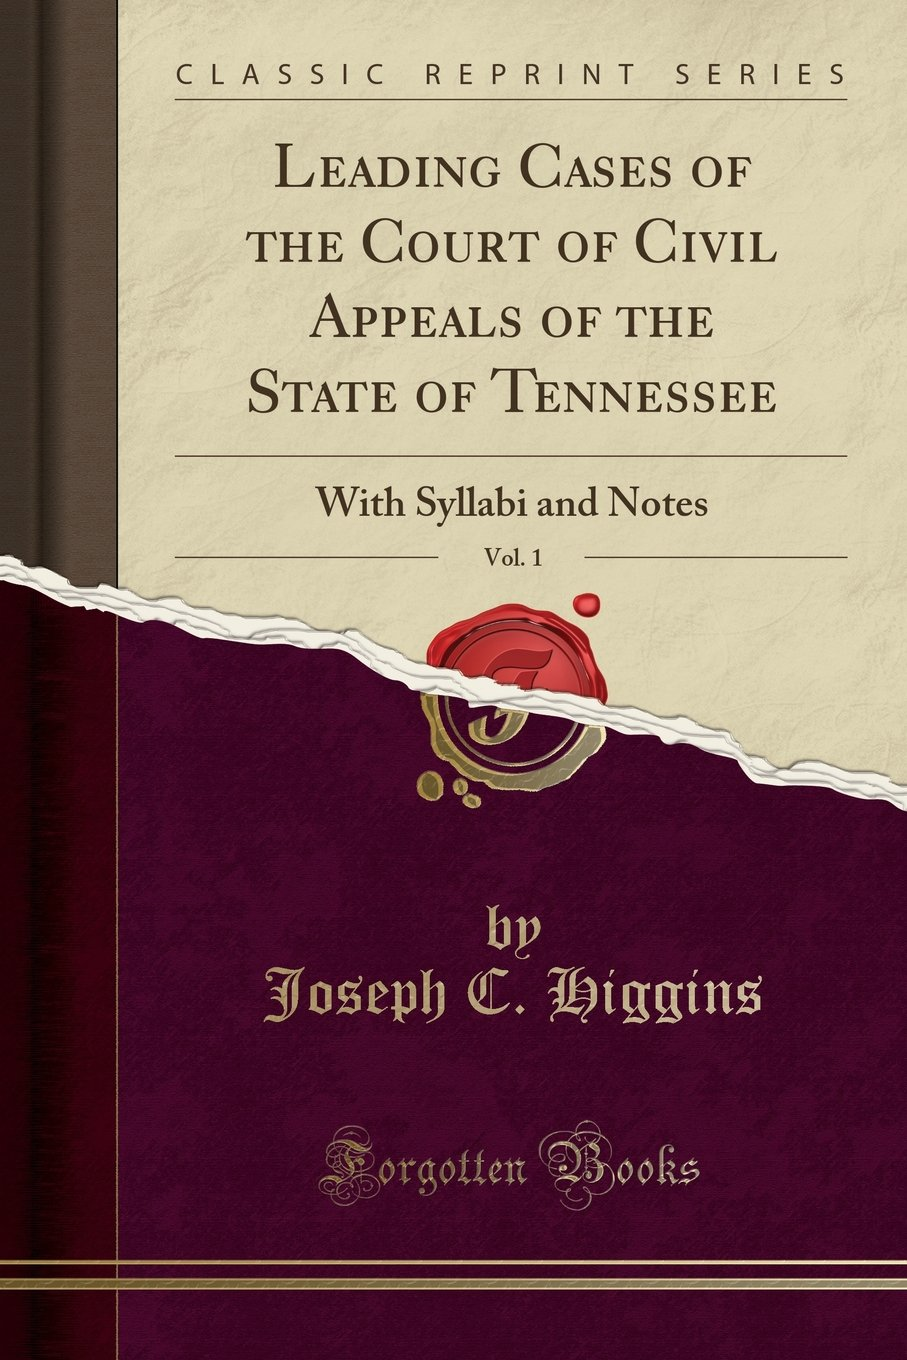 Leading Cases of the Court of Civil Appeals of the State of Tennessee, Vol. 1: With Syllabi and Notes (Classic Reprint) ebook